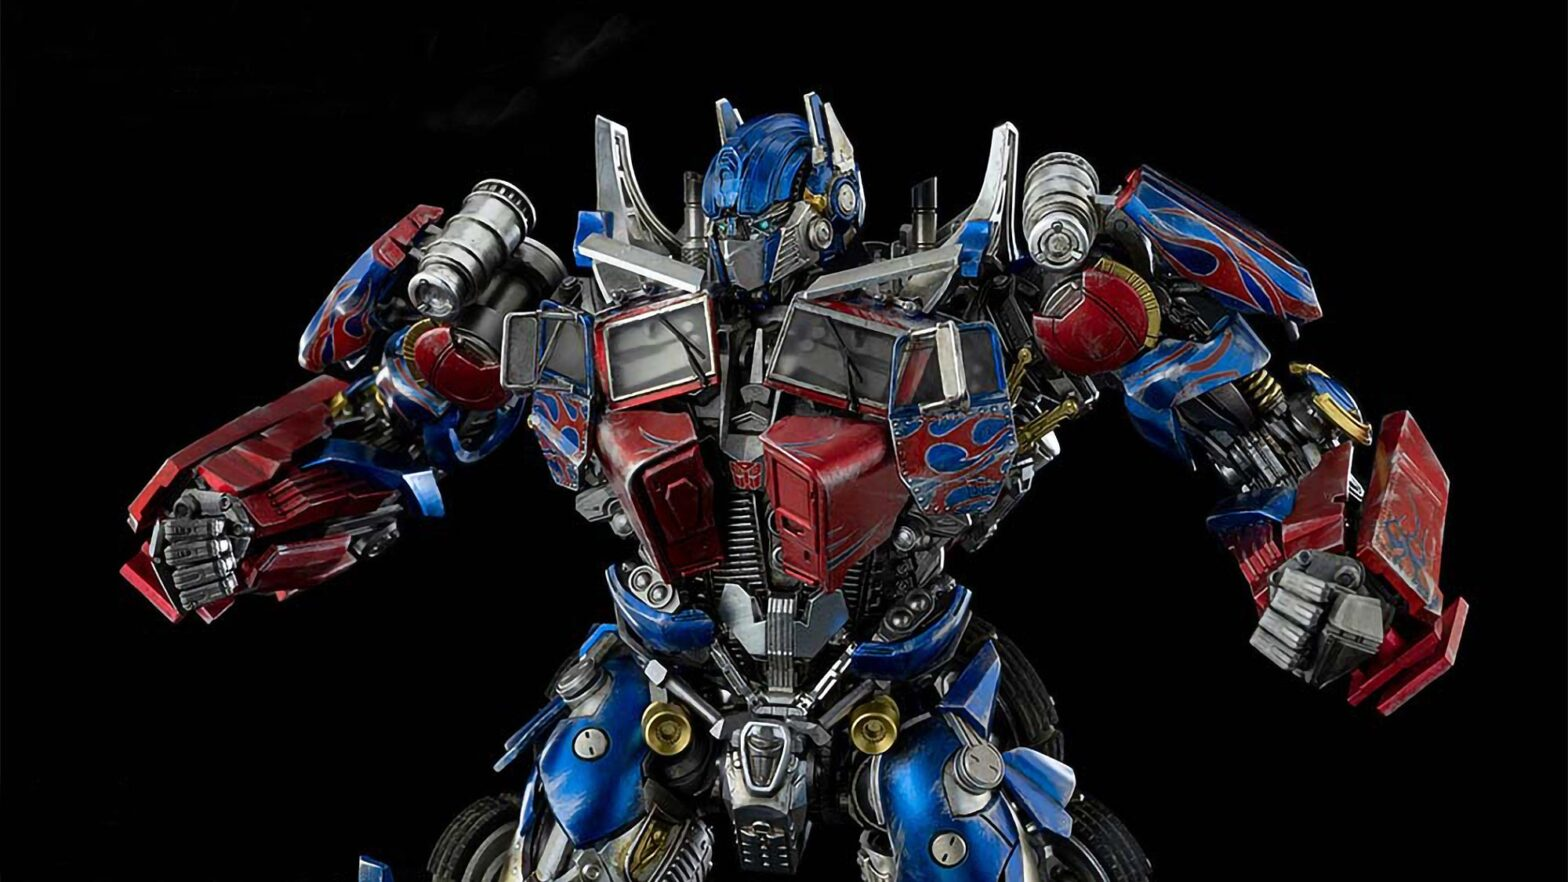 Transformers ROTF DLX Optimus Prime Figure